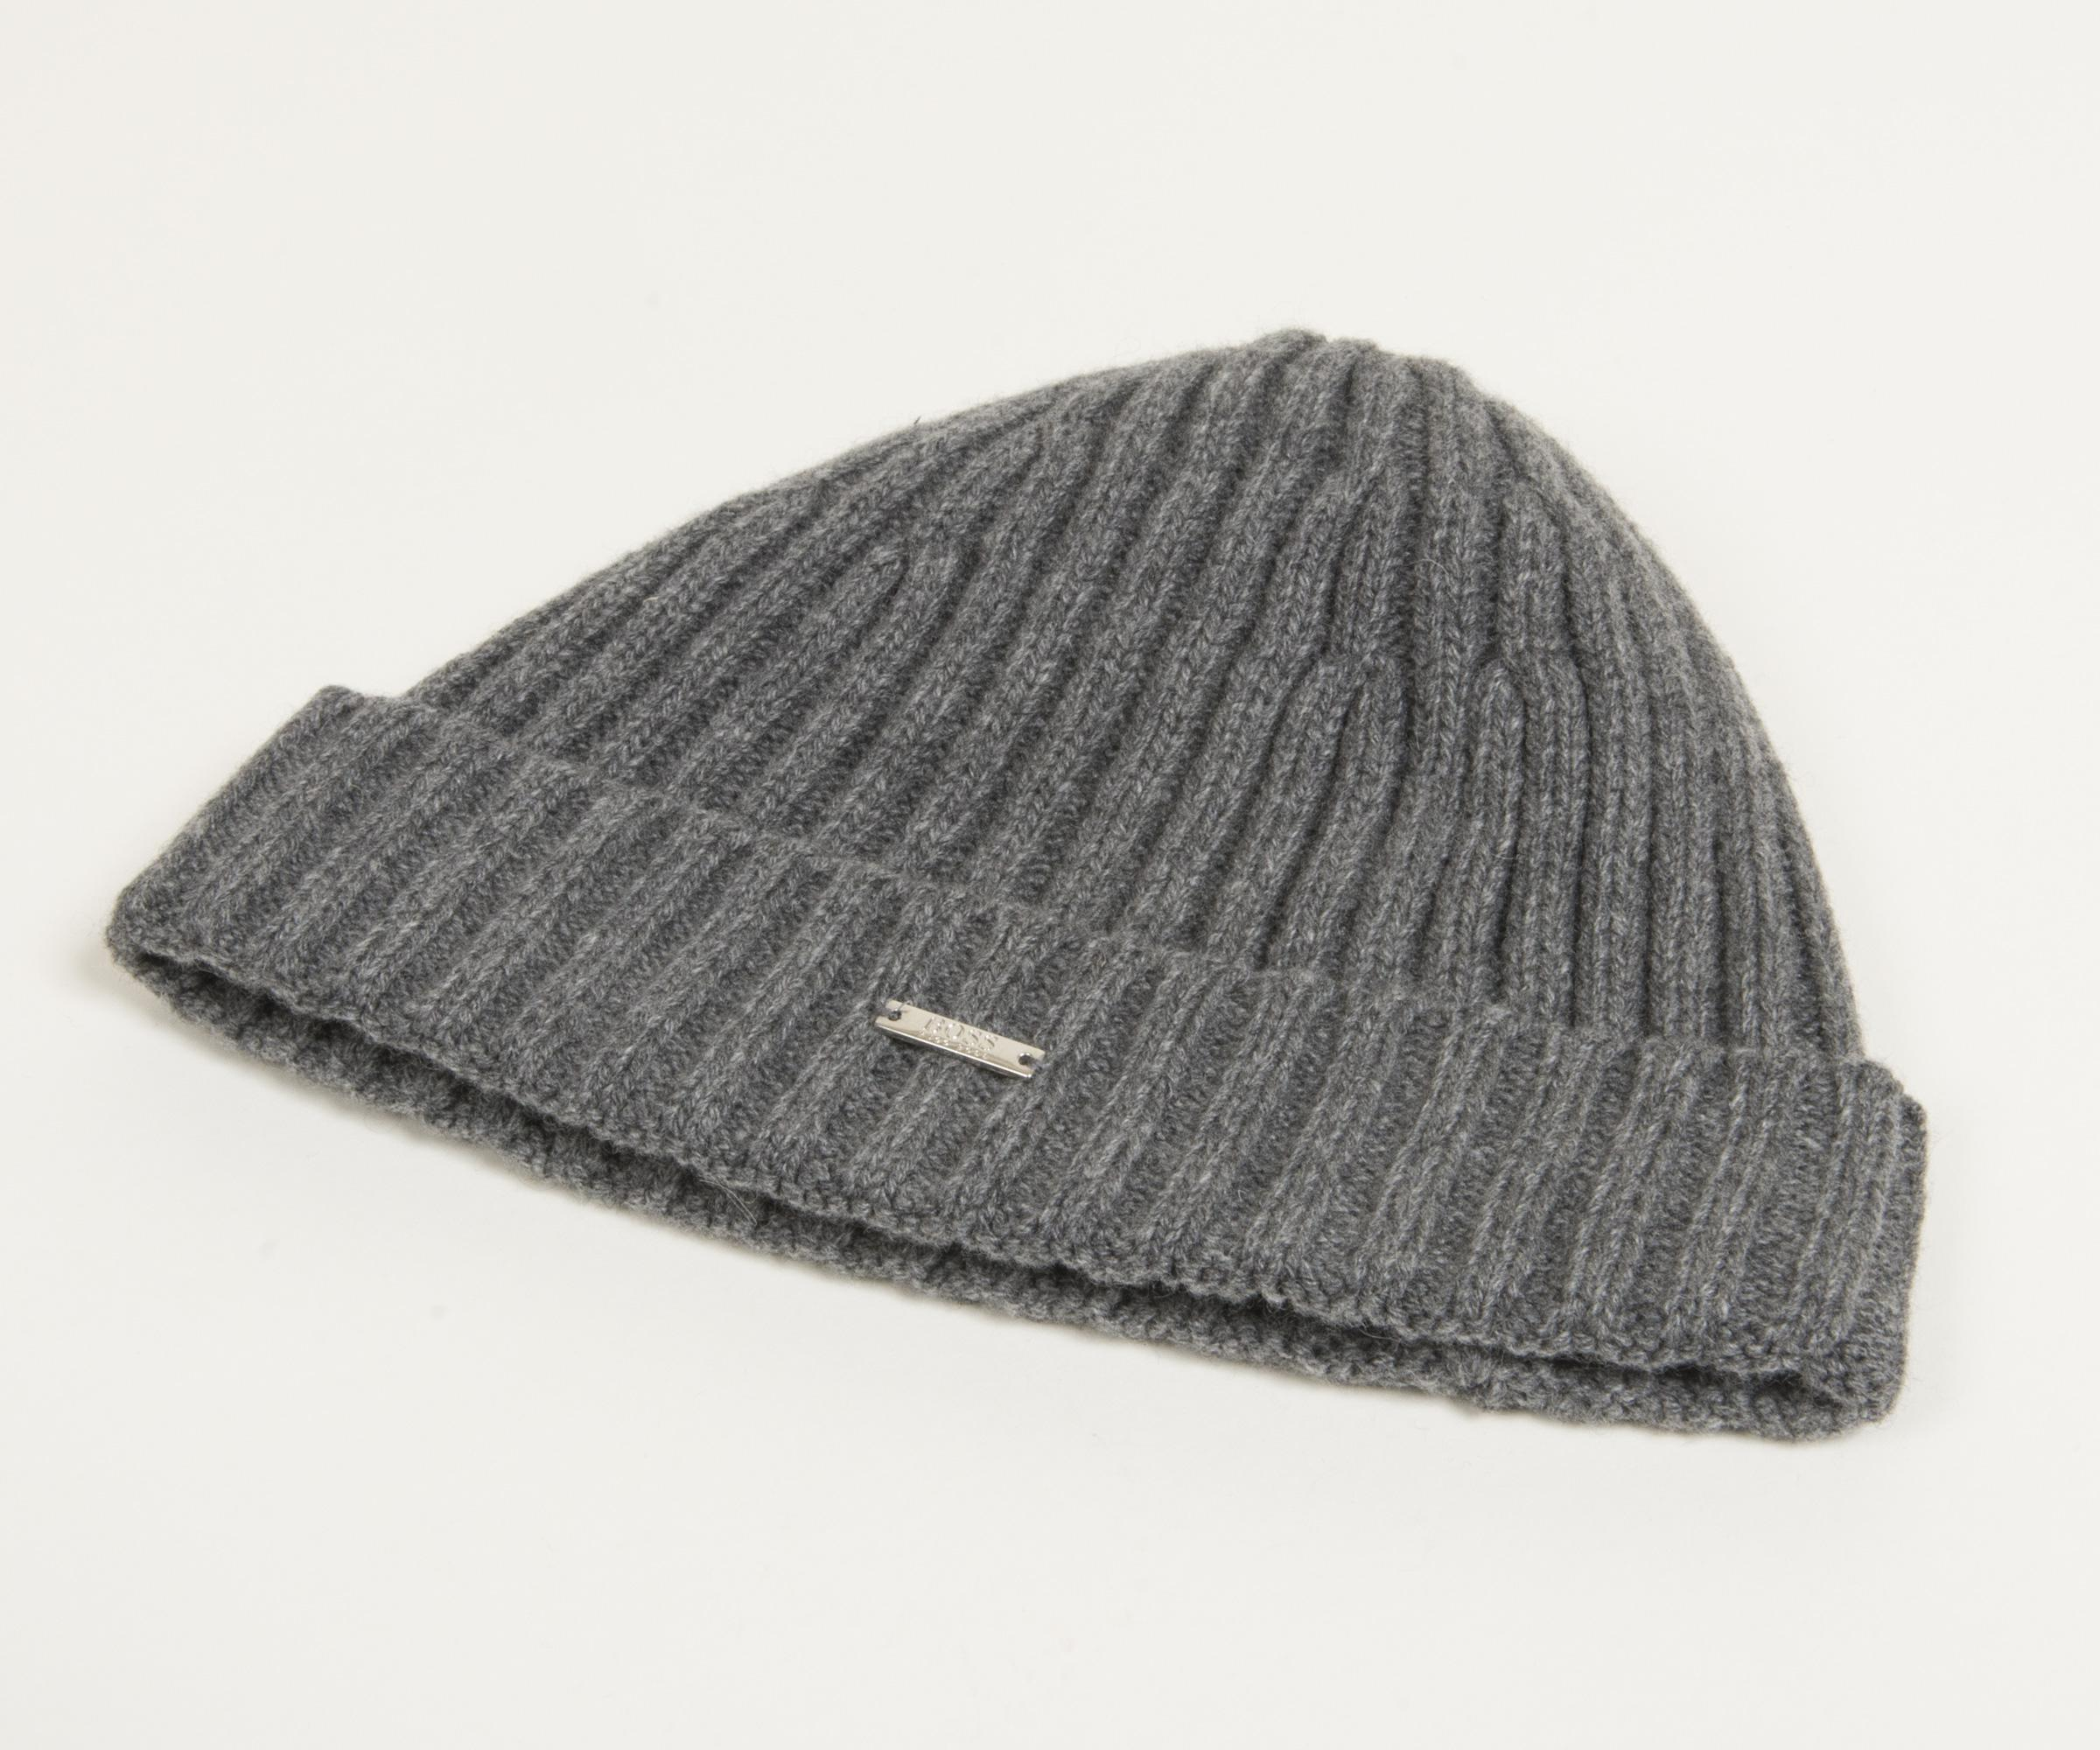 c0071c7bb59 Lyst - BOSS  t-benzo  Cashmere Classic Ribbed Beanie Hat Grey in ...